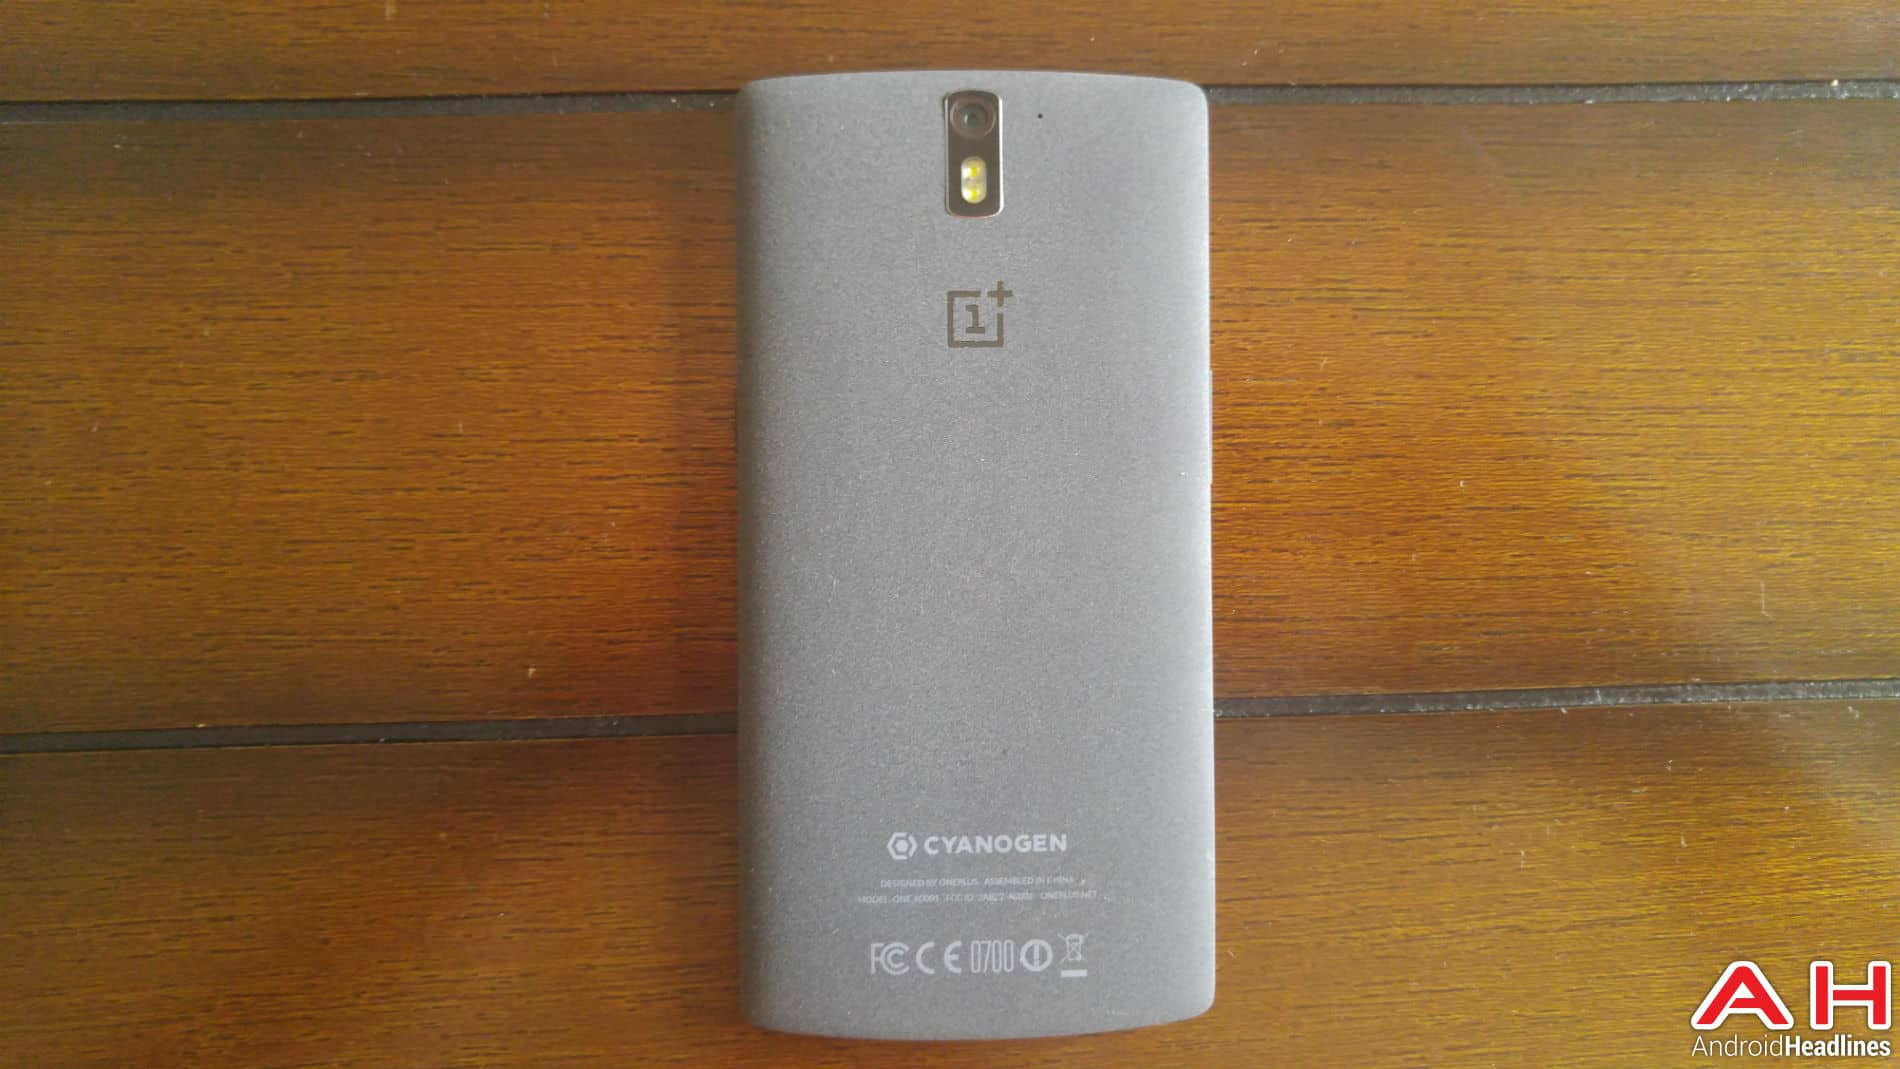 OnePlus One AH Full View